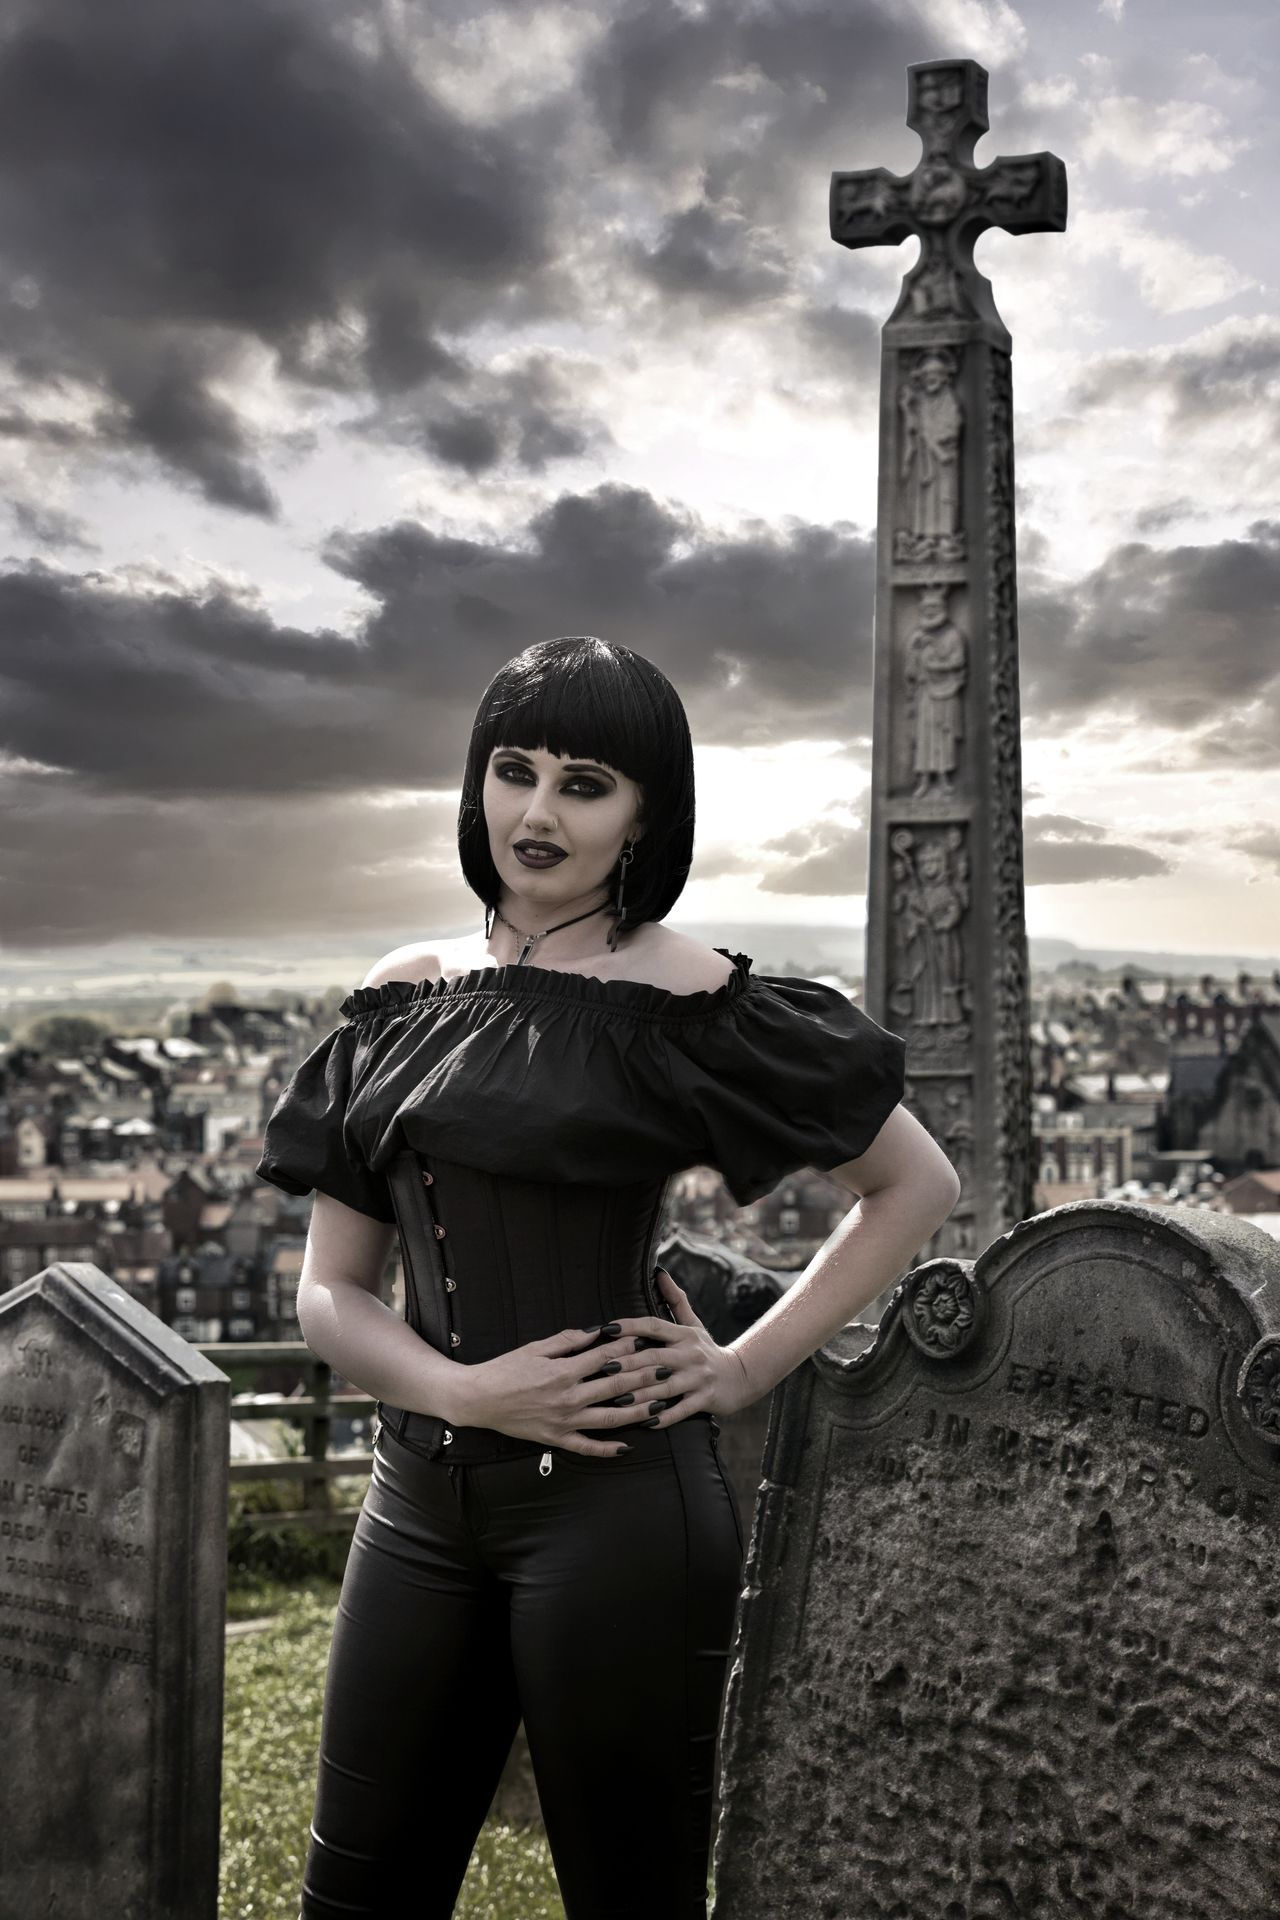 Whitby Goth Weekend Whitby Whitby Goth Weekend WGW Portrait Goth Portrait Of A Woman Portraiture Beautiful Woman Cloud - Sky Graveyard Beauty Graveyard Photographer Model Modelgirl Goth Girl Adult People Adults Only Standing Sky Headwear Looking At Camera One Person Outdoors The Portraitist - 2017 EyeEm Awards